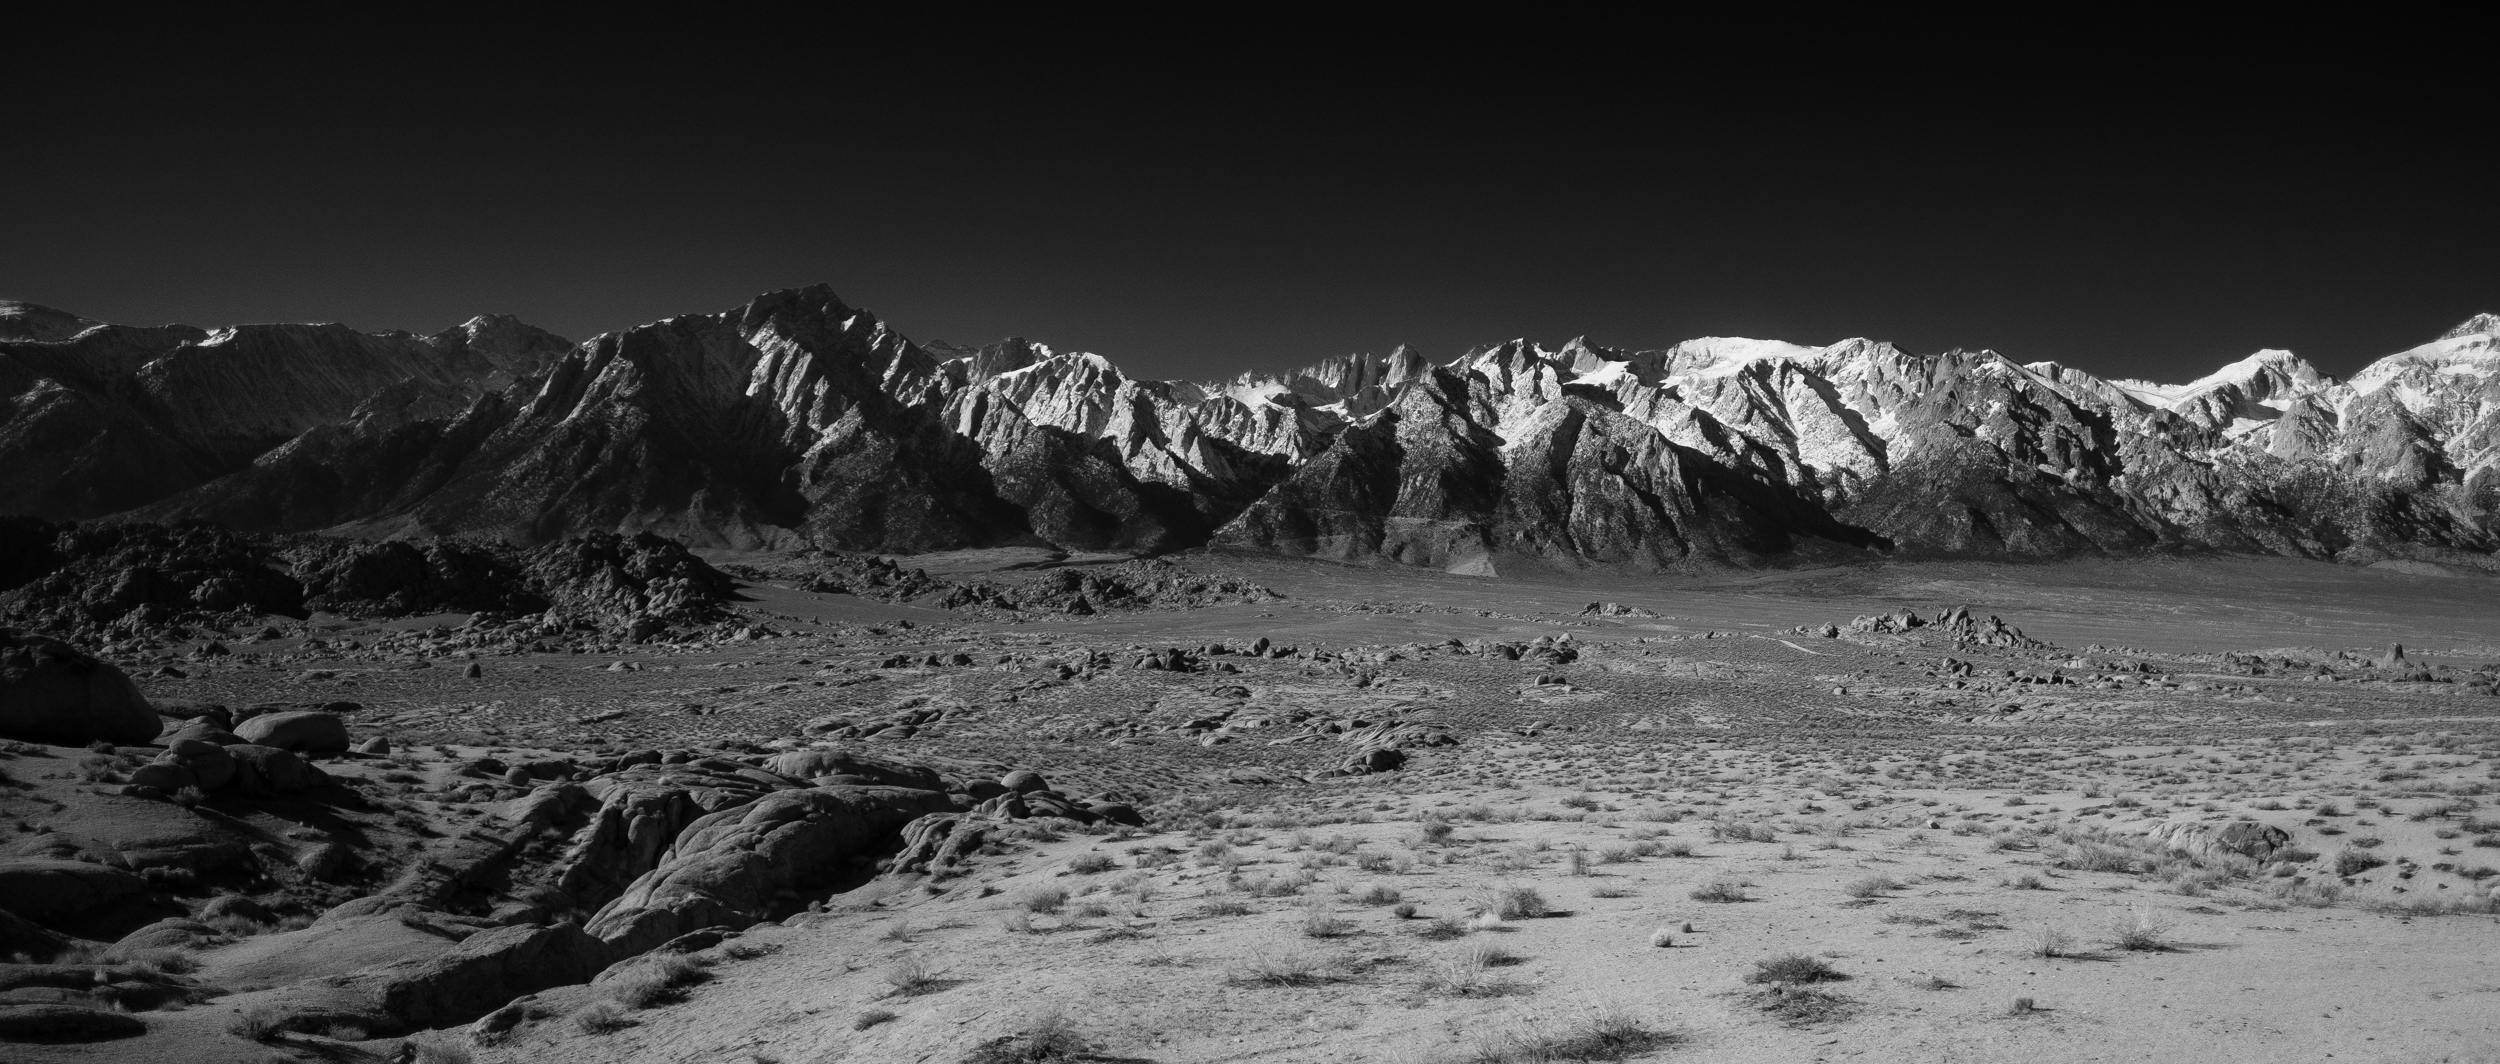 Eastern Sierras in black and white